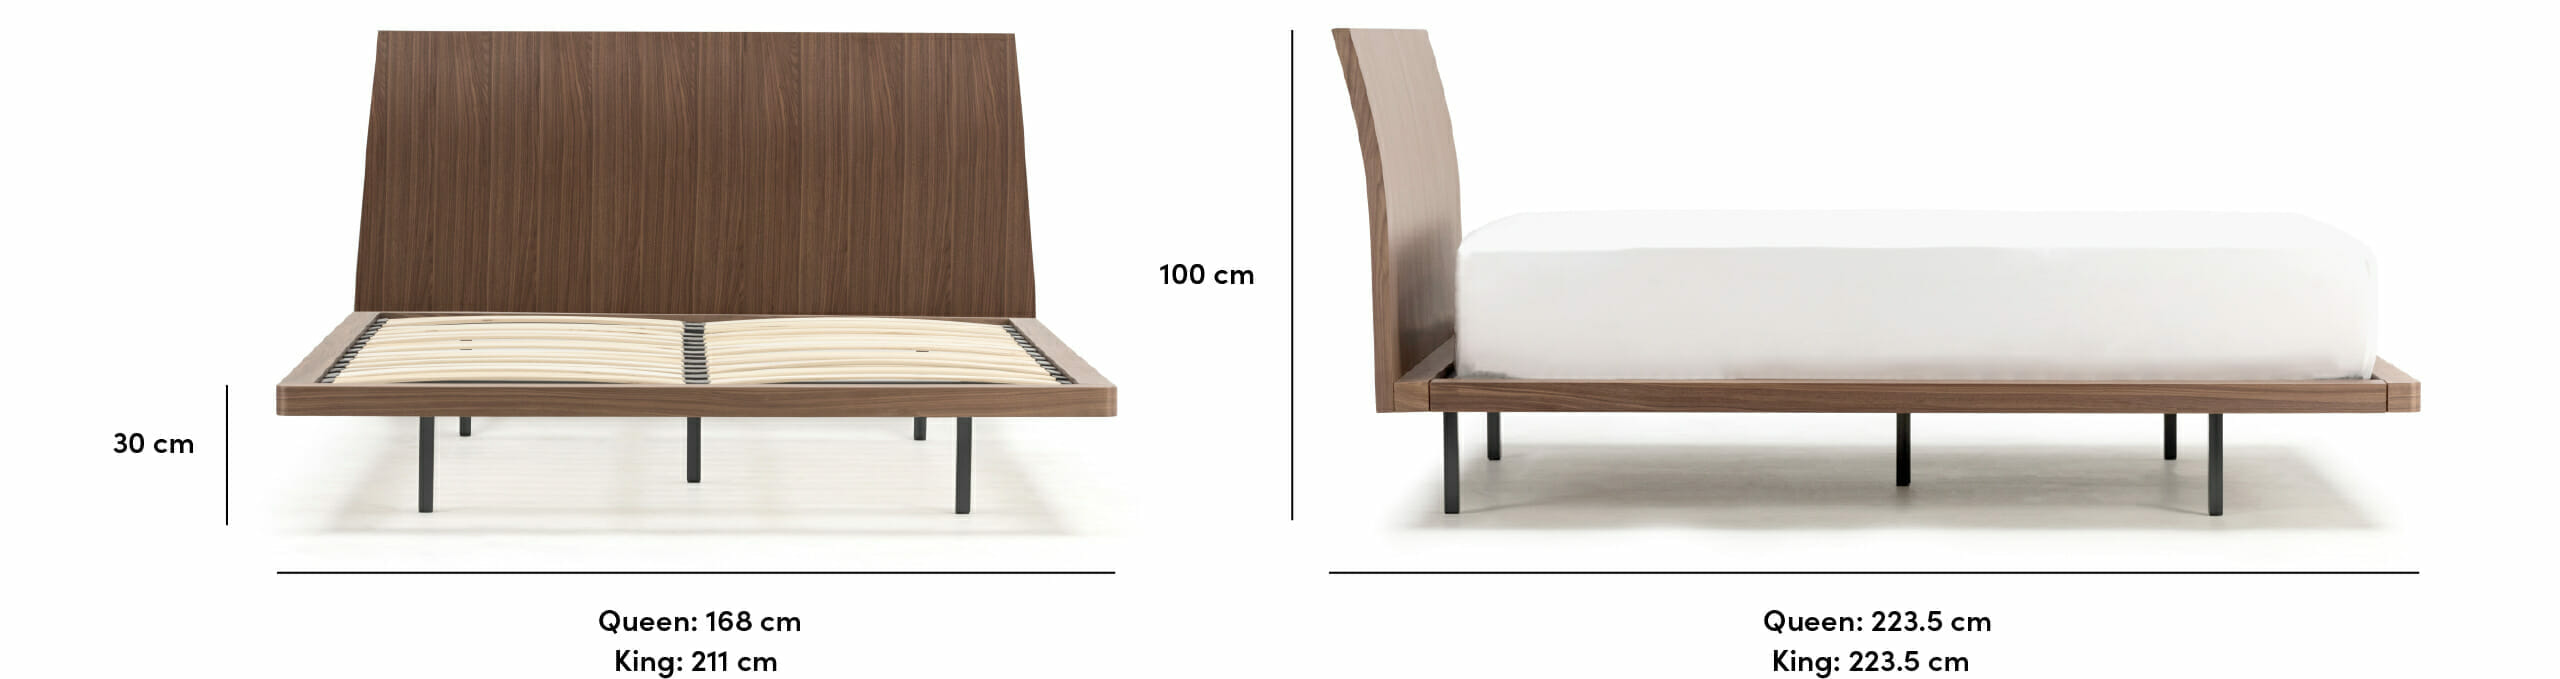 Sunset bed dimensions